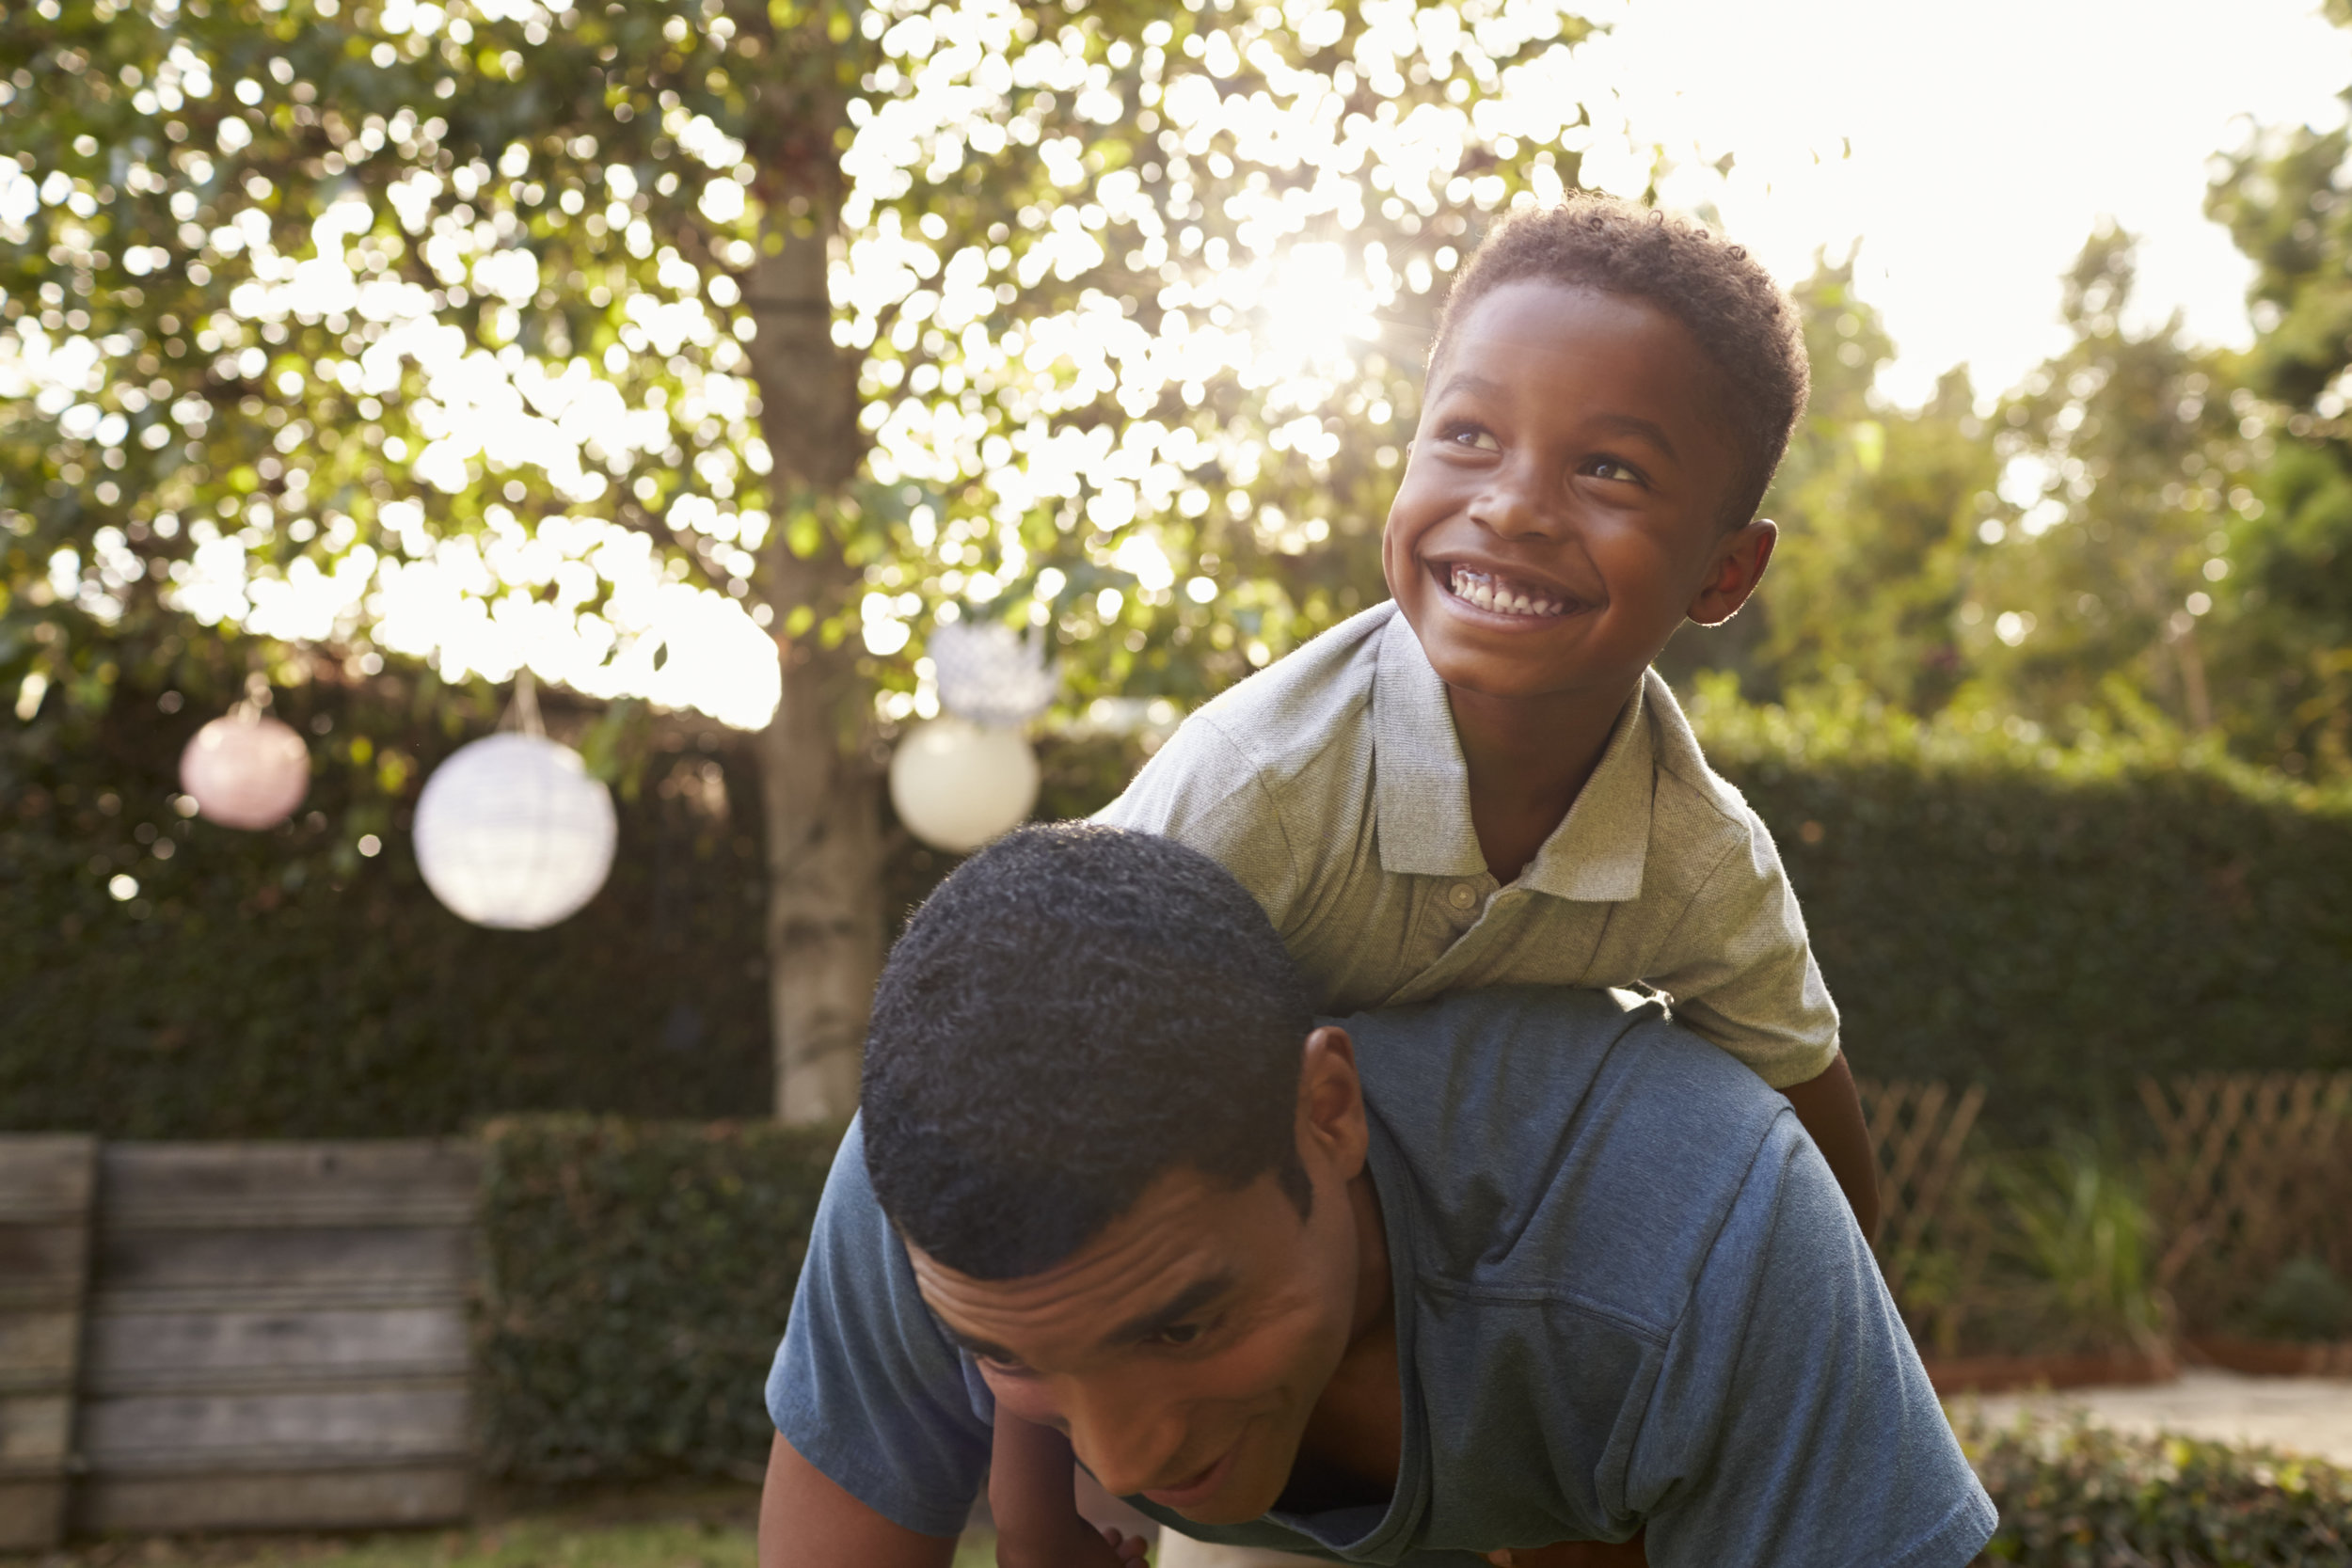 young-black-boy-playing-on-his-dad-s-back-in-a-PU7RN4X.jpg